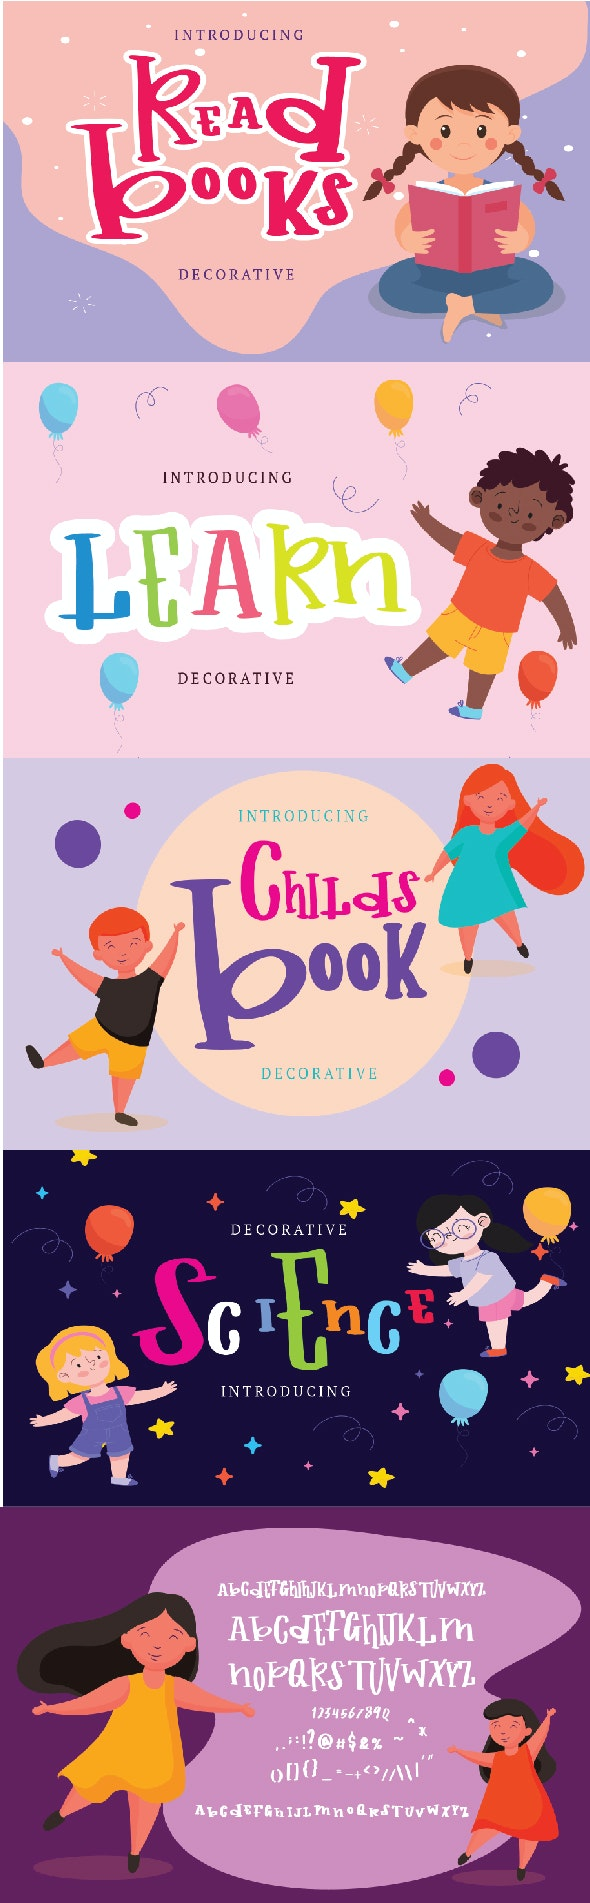 Childs Book - Decorative Fonts